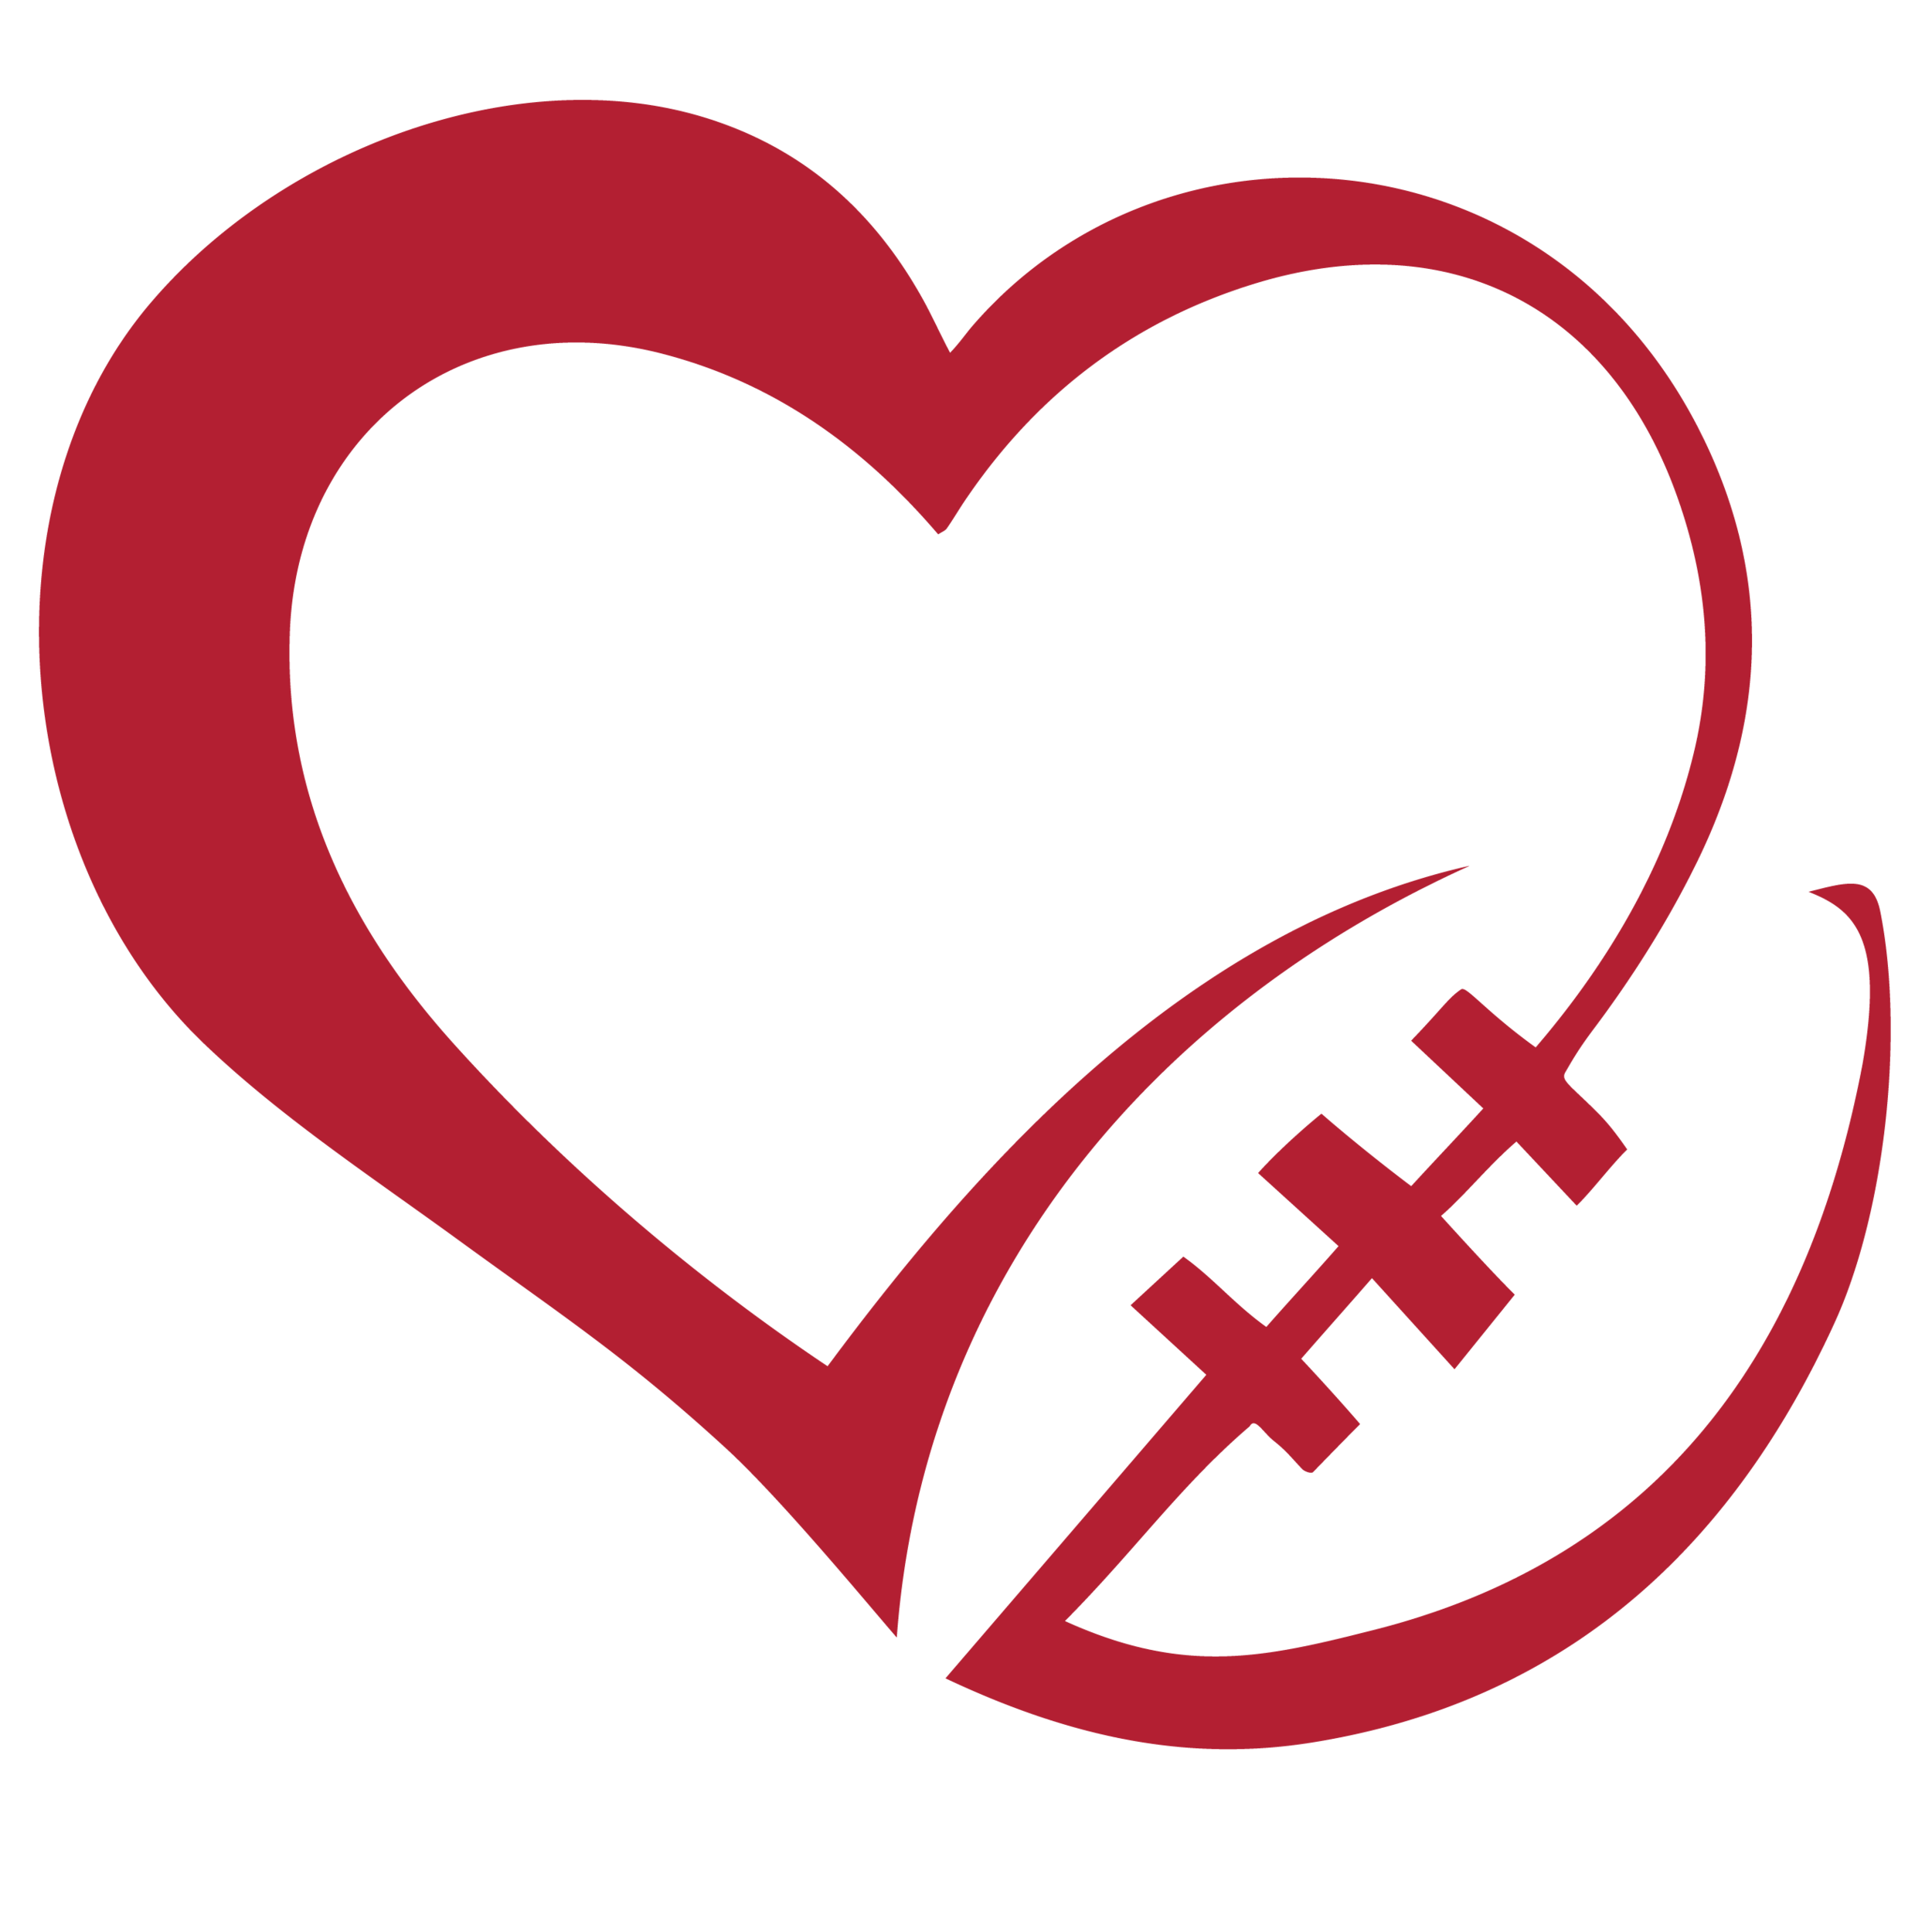 TEXANS FOR A CAUSE - VOLUNTEER TODAY AND HELP US MAKE A DIFFERENCE.